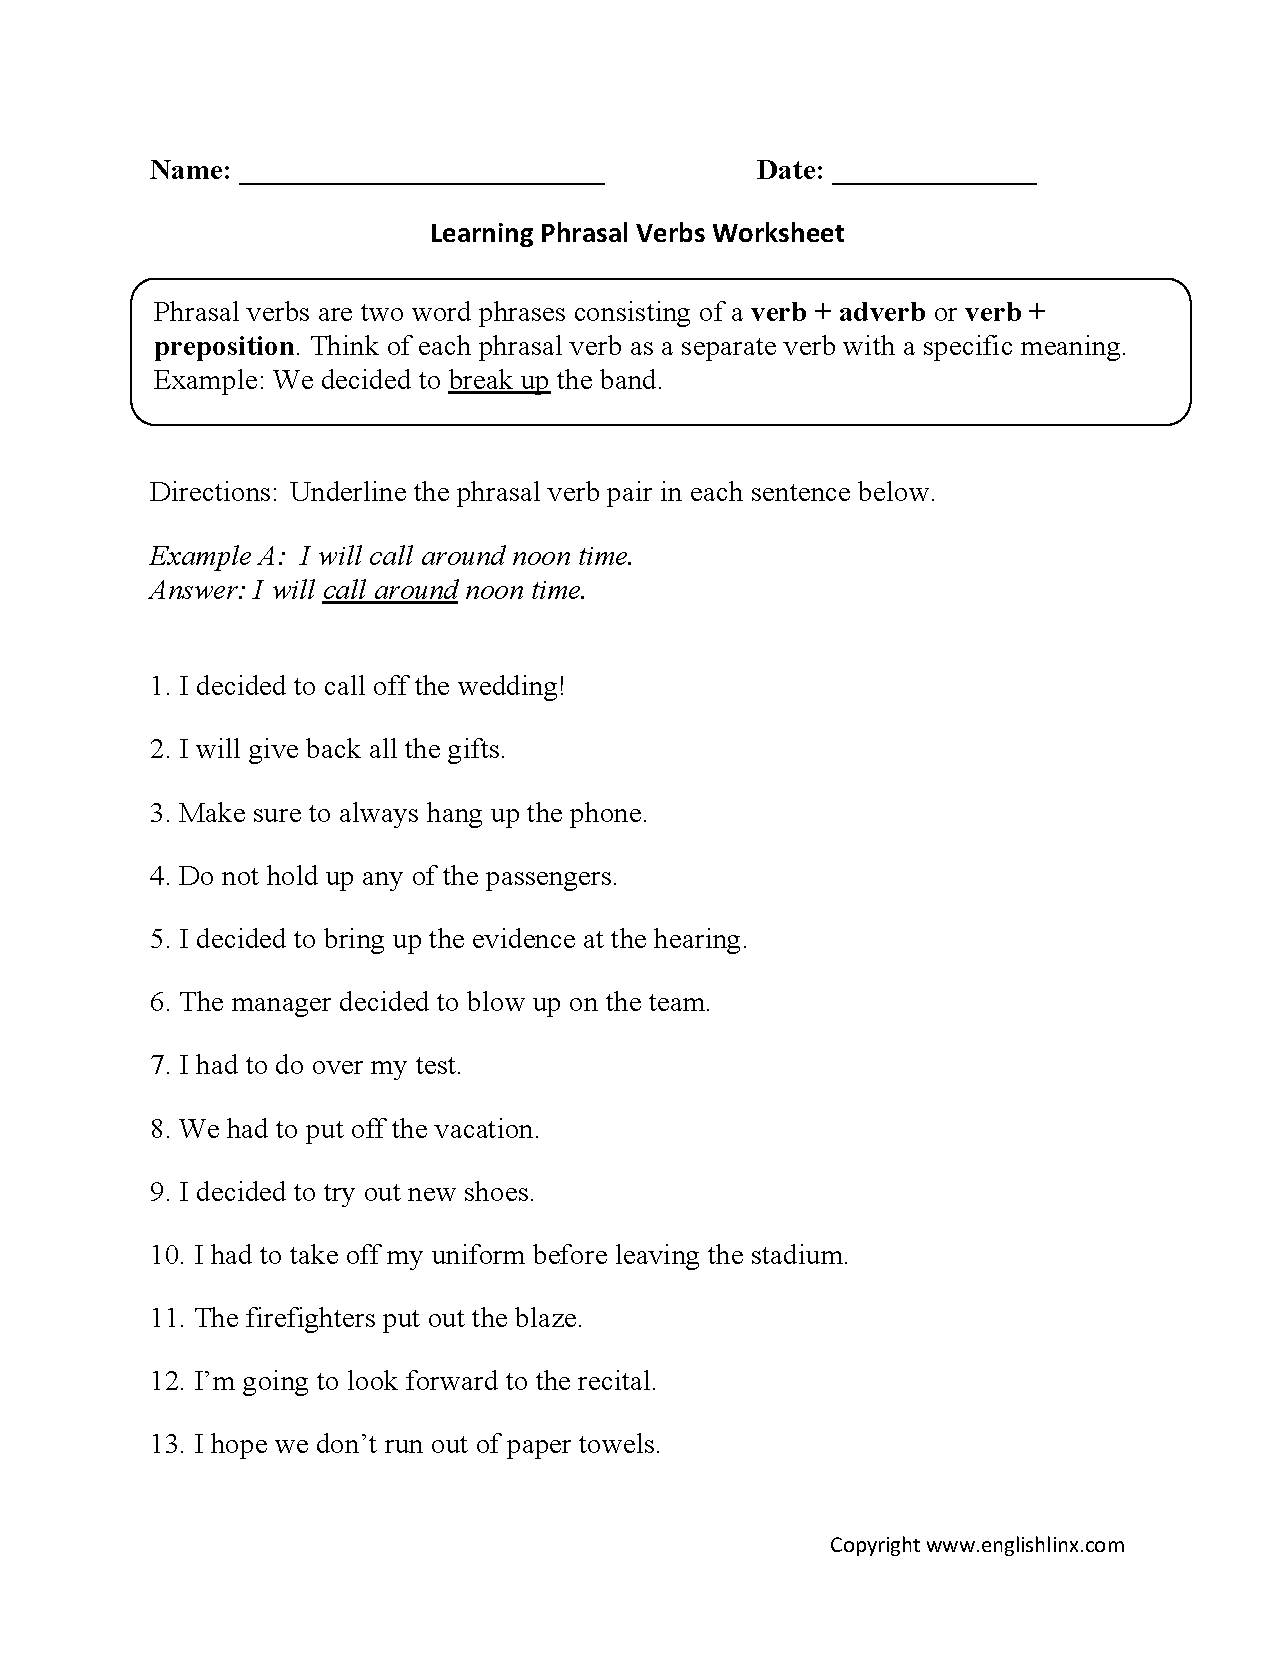 Worksheet Worksheet Verb englishlinx com verbs worksheets phrasal worksheets